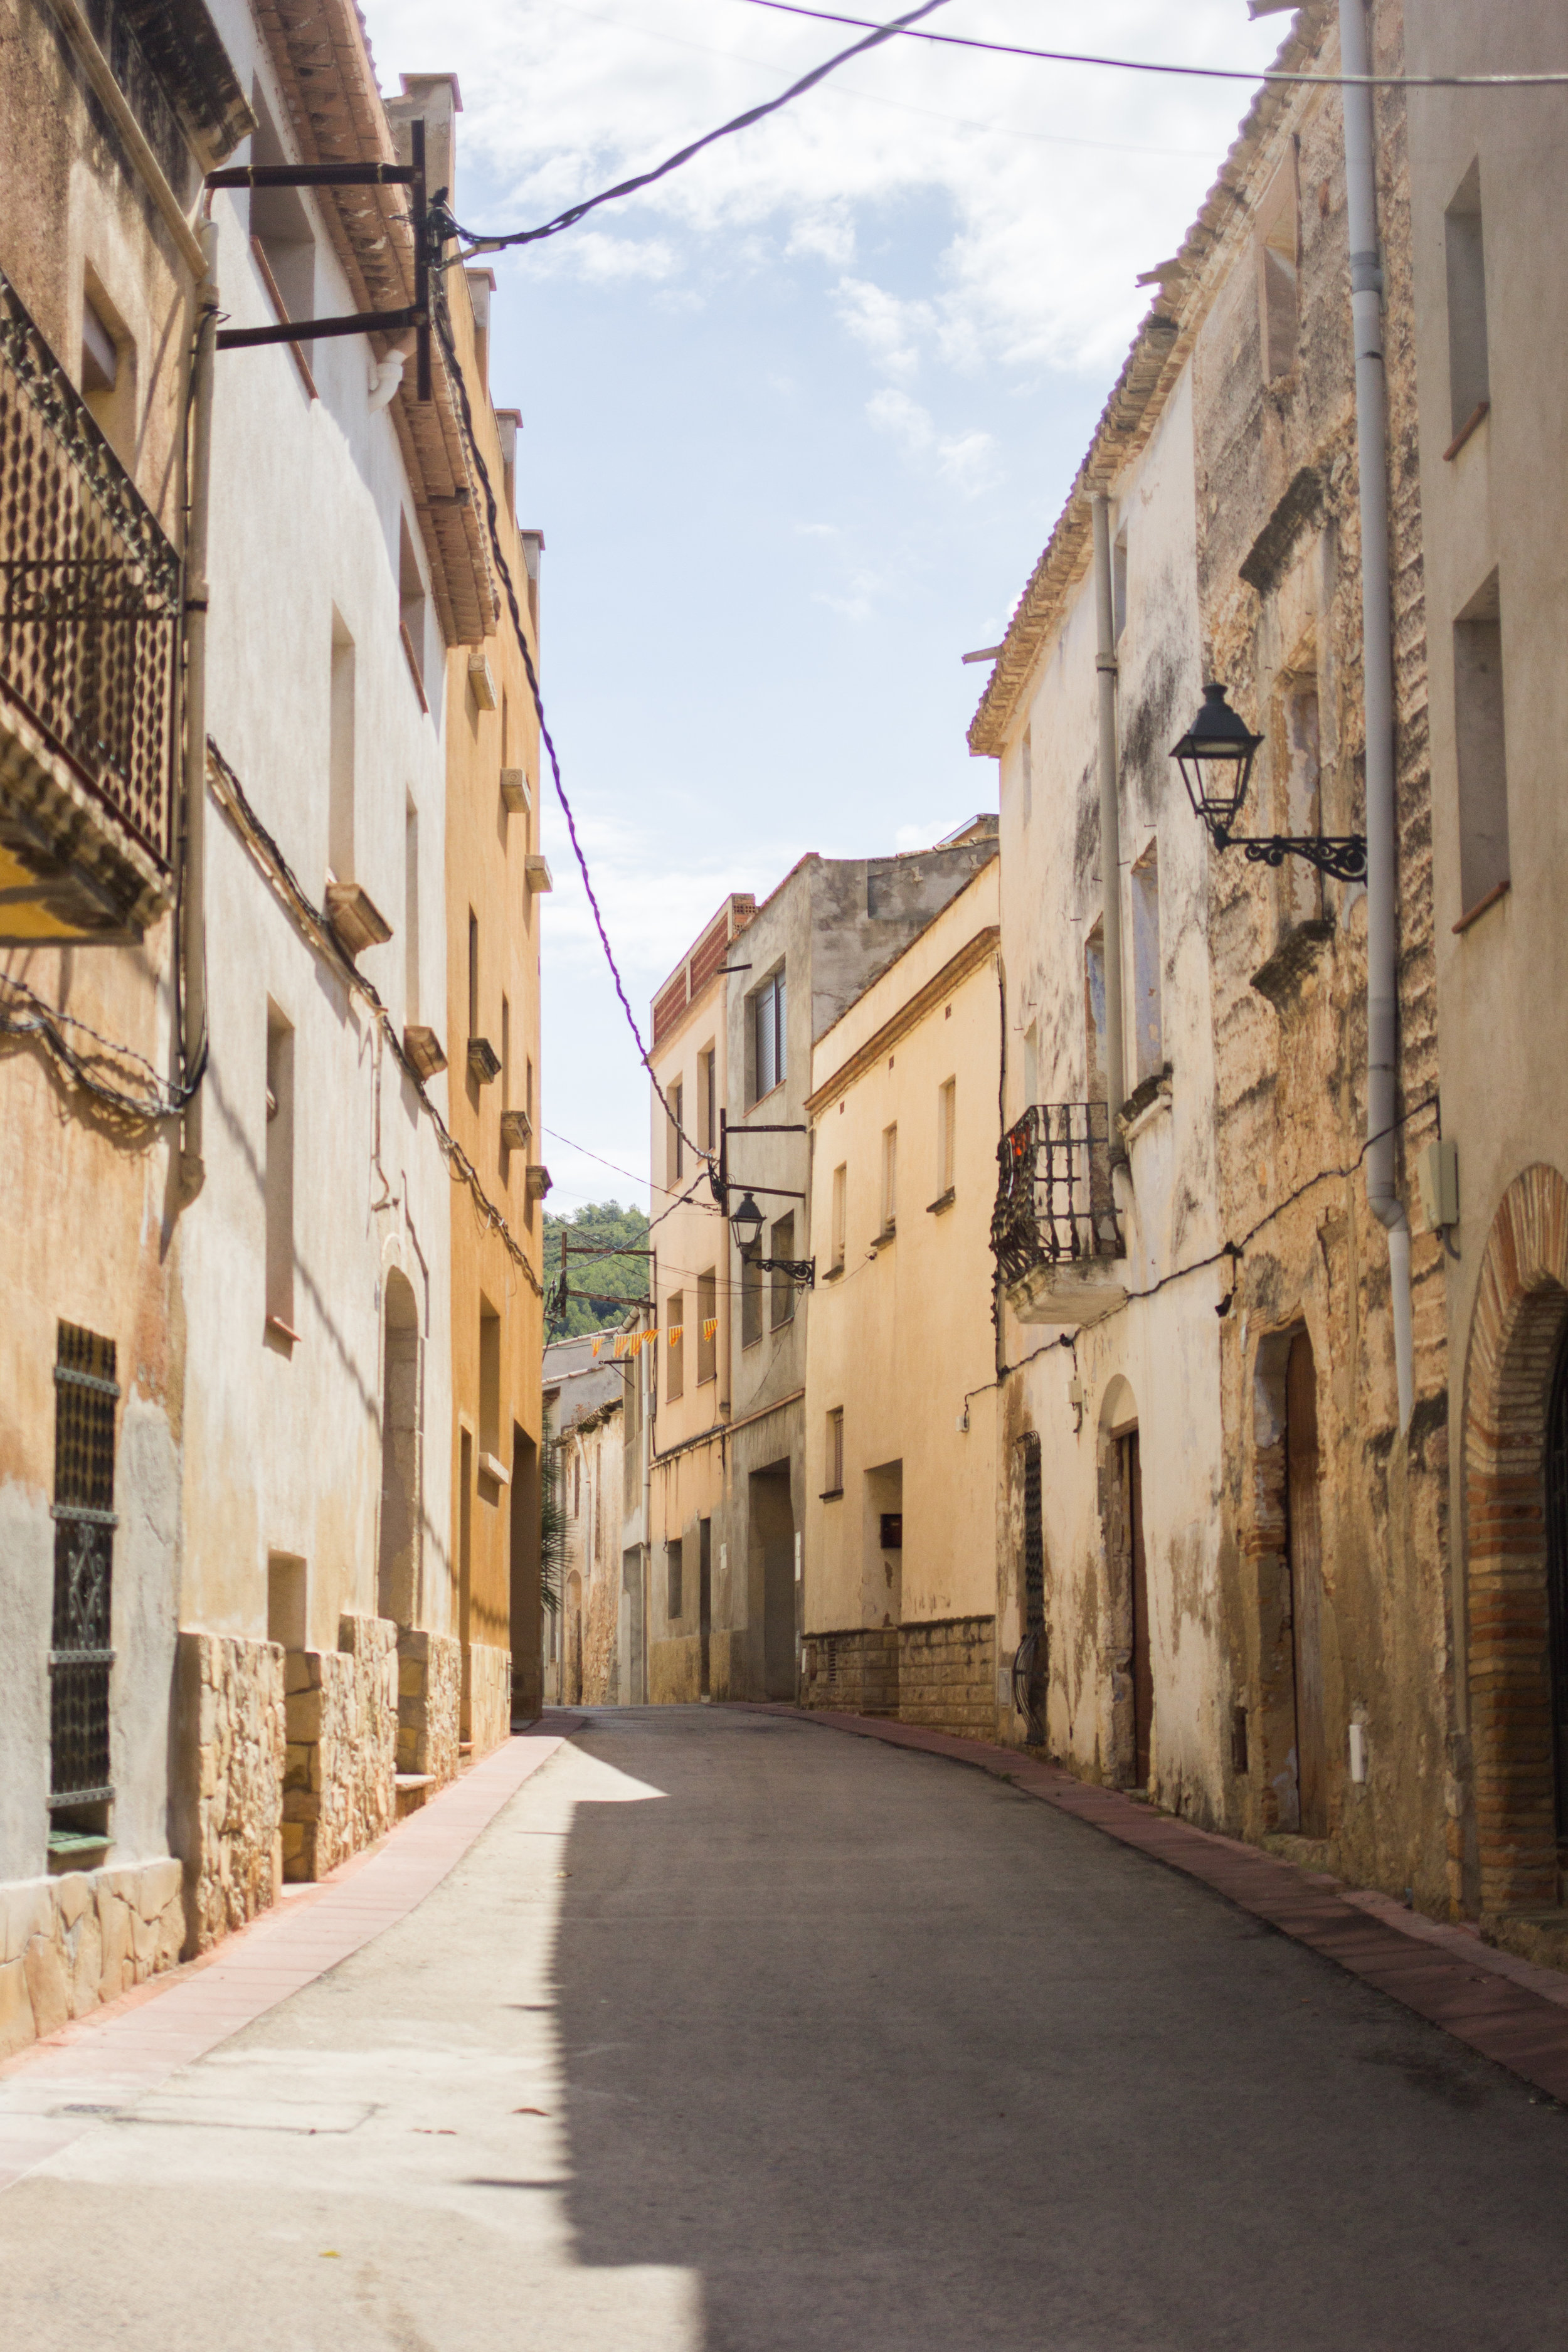 A narrow street in a small Catalunya town